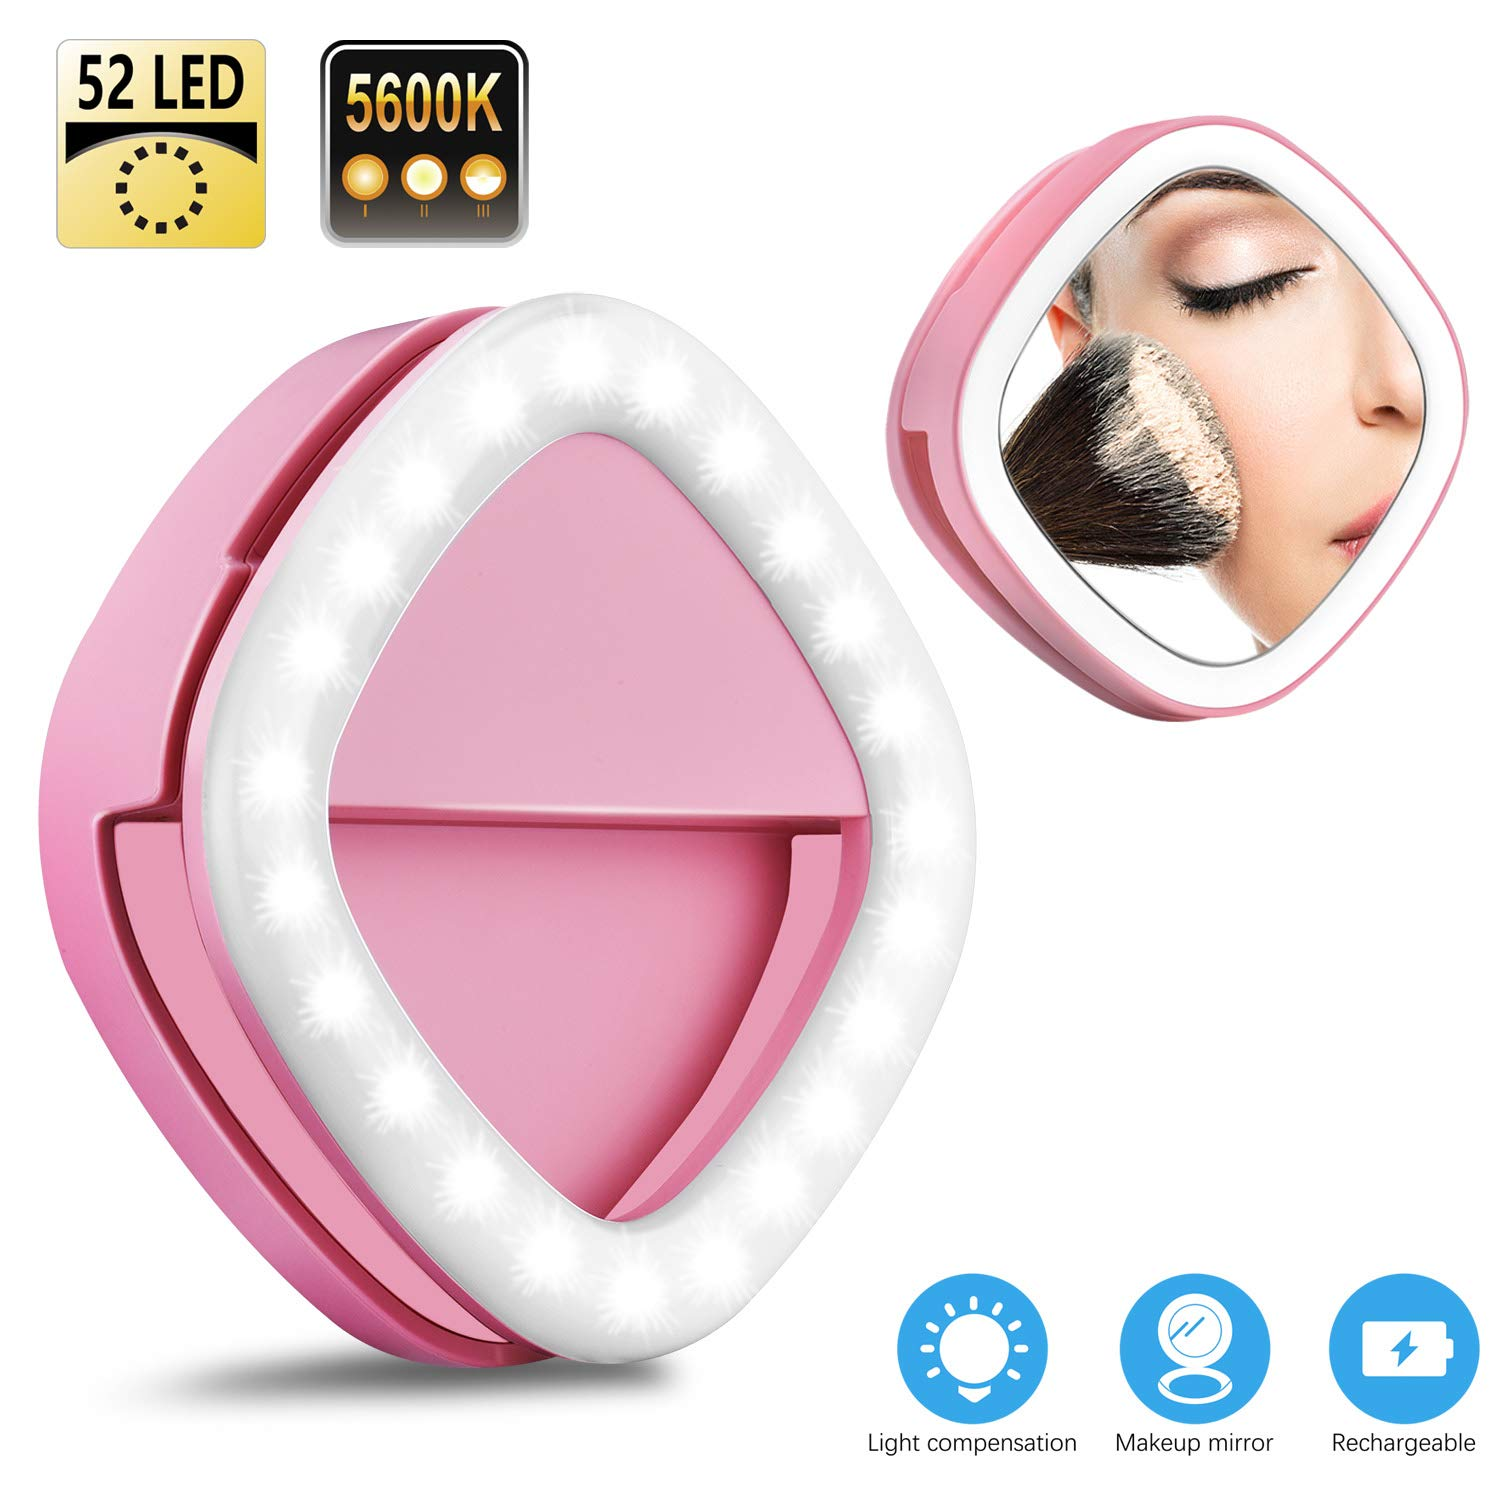 Solarxia Clip-on Selfie Ring light Rechargeable LED Flash Lamp Clip Selfie Fill Light with Makeup Mirror for iPhone Camera iPad Laptop Photography Video Lighting (White) KD-100P